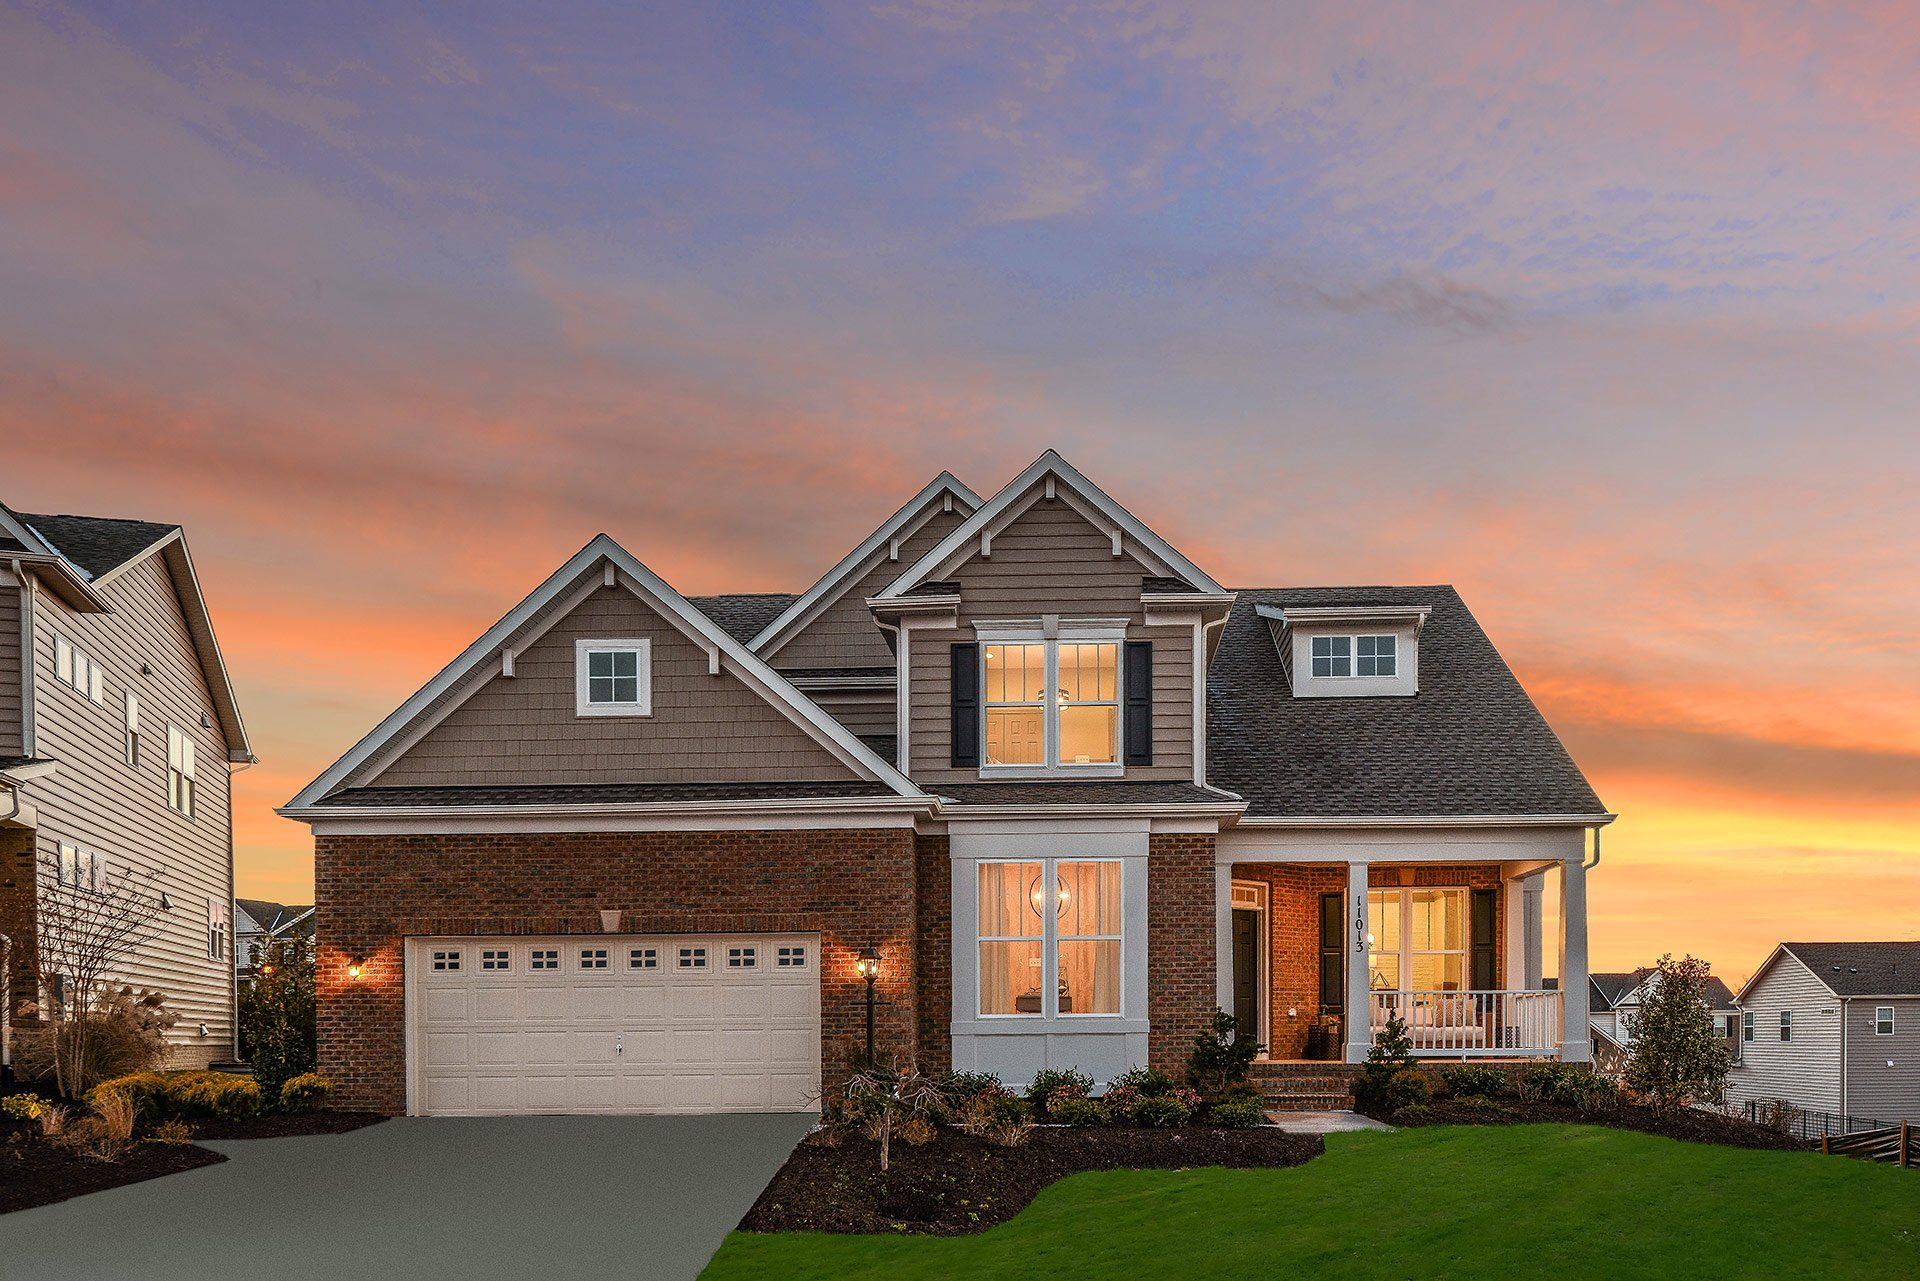 New Homes Frederick MD